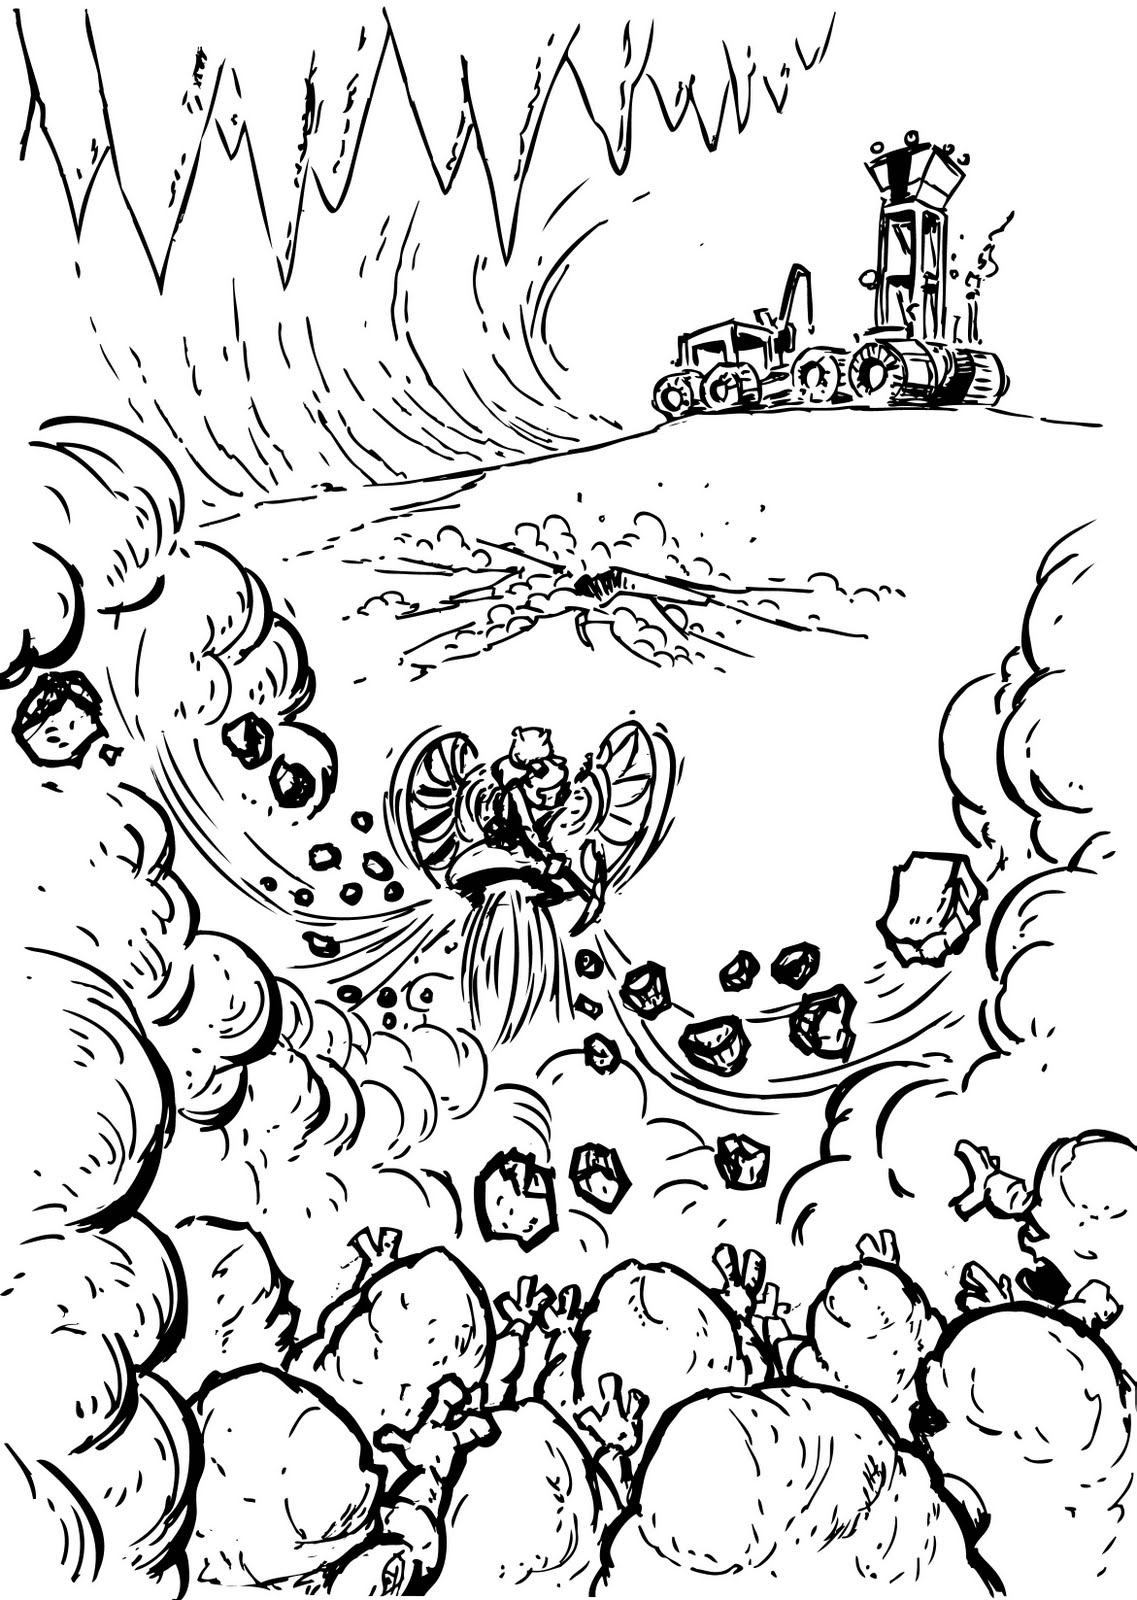 miner coloring pages - photo #16